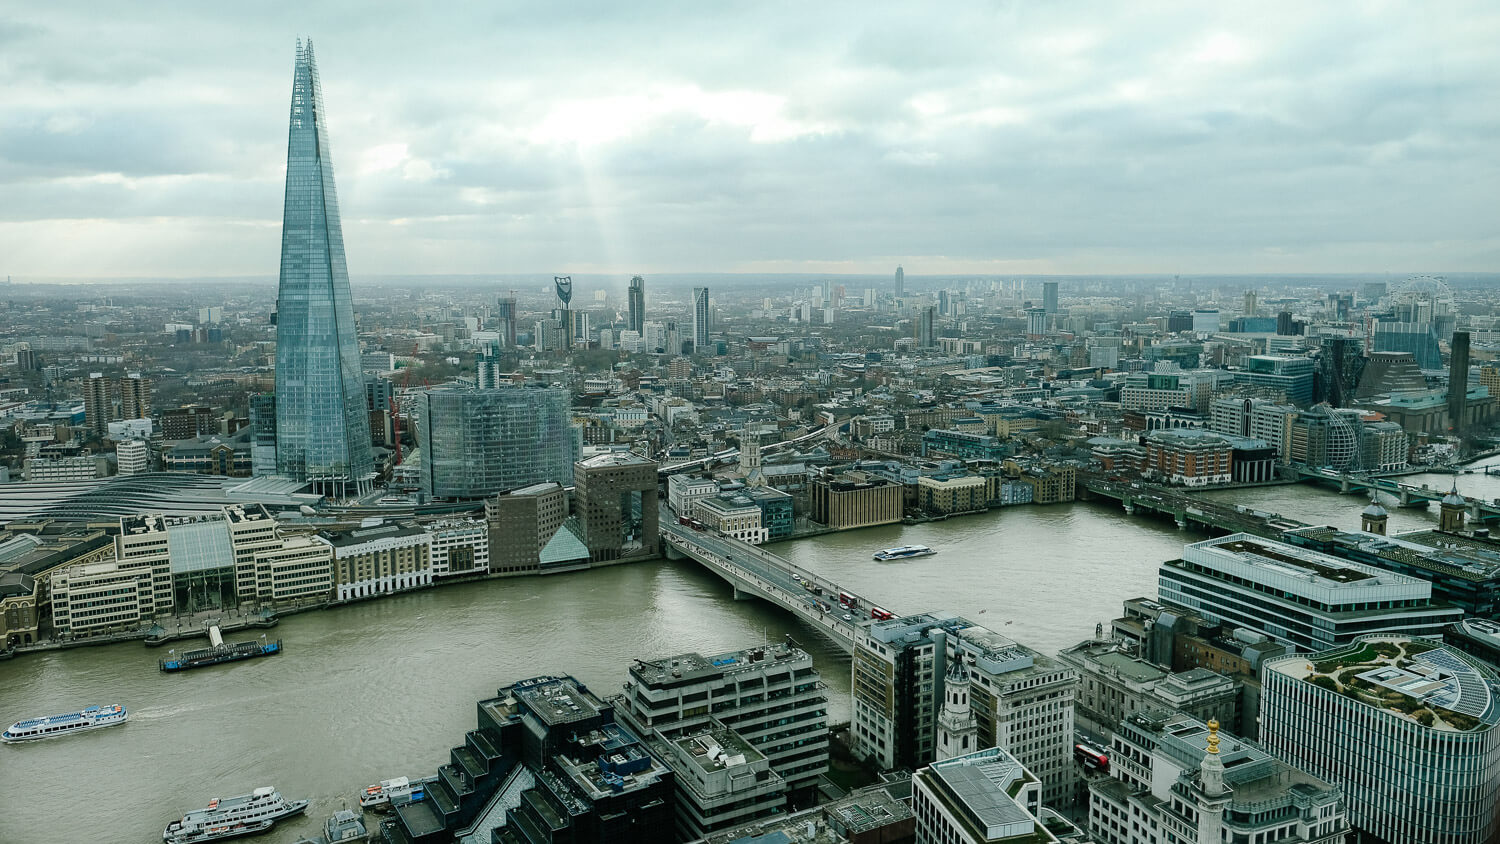 View of the London Shard from the Sky Garden